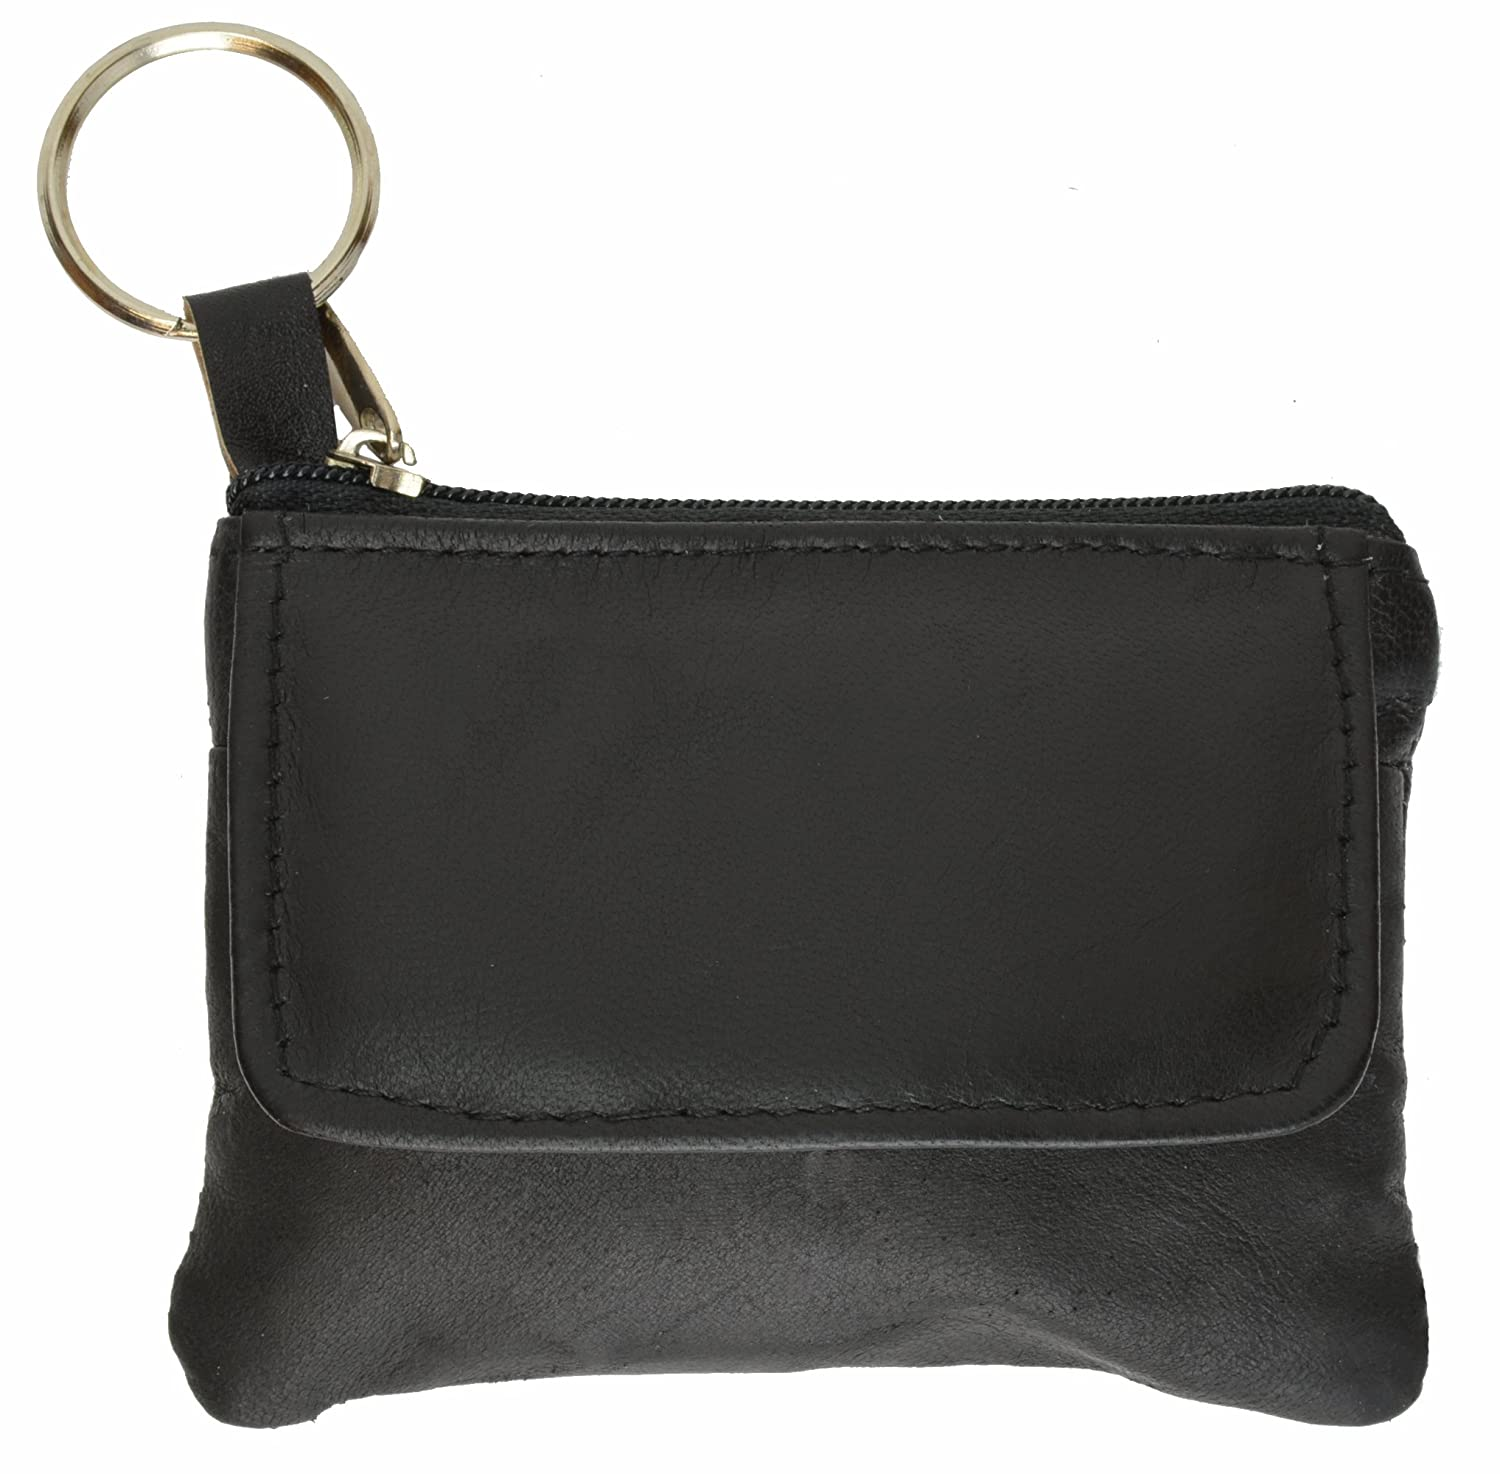 100% Leather Zippered Pocket Change Purse Brown #955